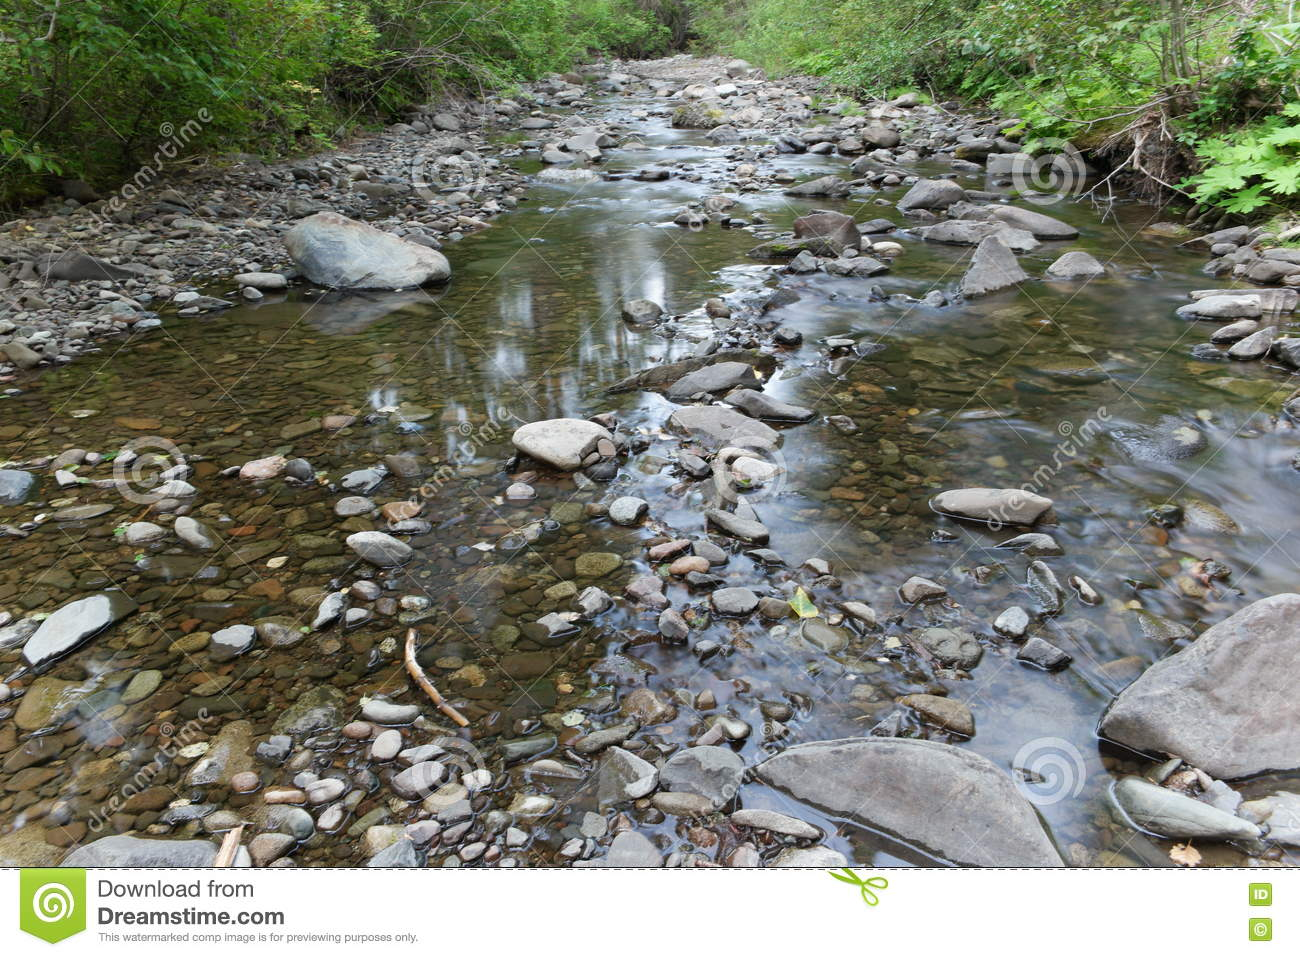 Drying stream bed stock image. Image of shallow, river.